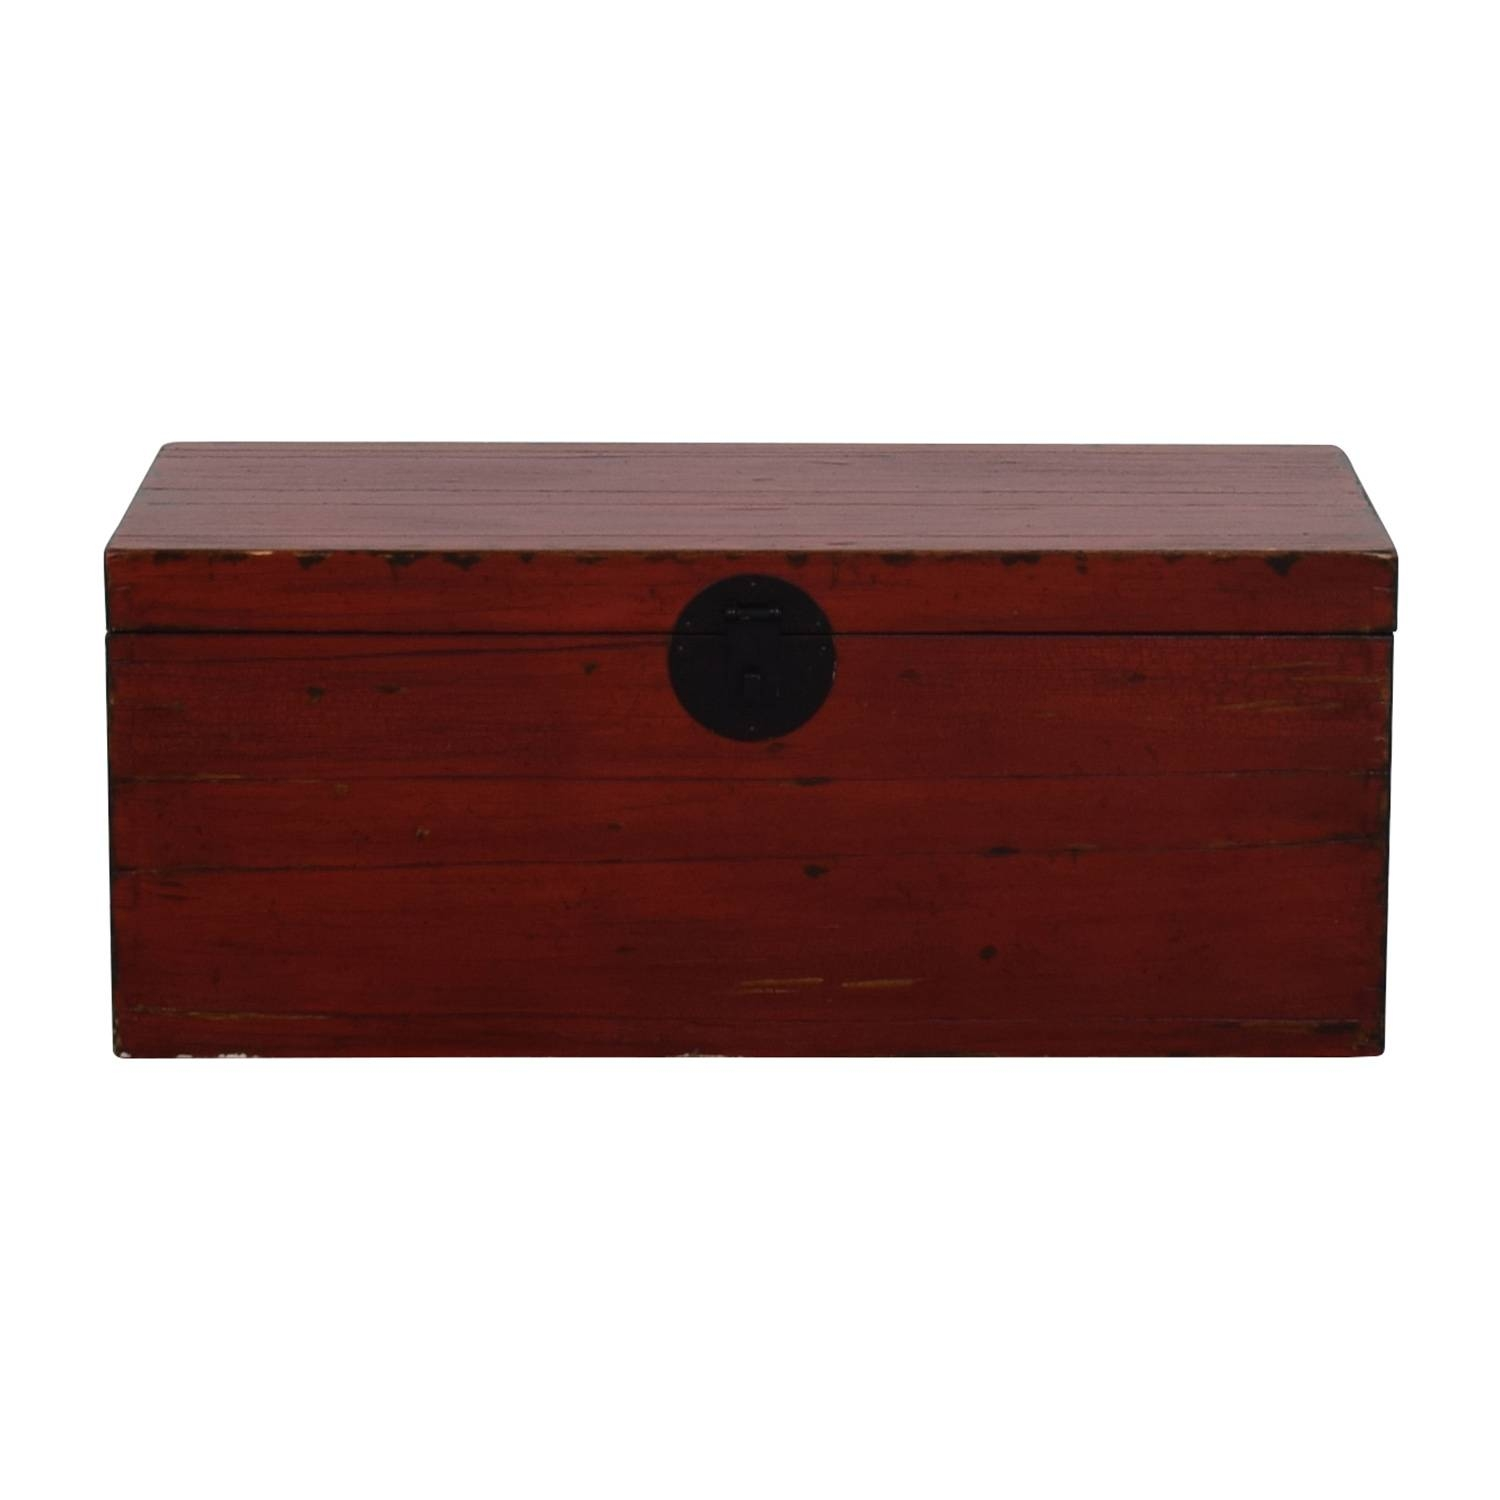 59% Off - Asian Style Red Rustic Trunk / Storage throughout Asian Sideboards (Image 4 of 30)